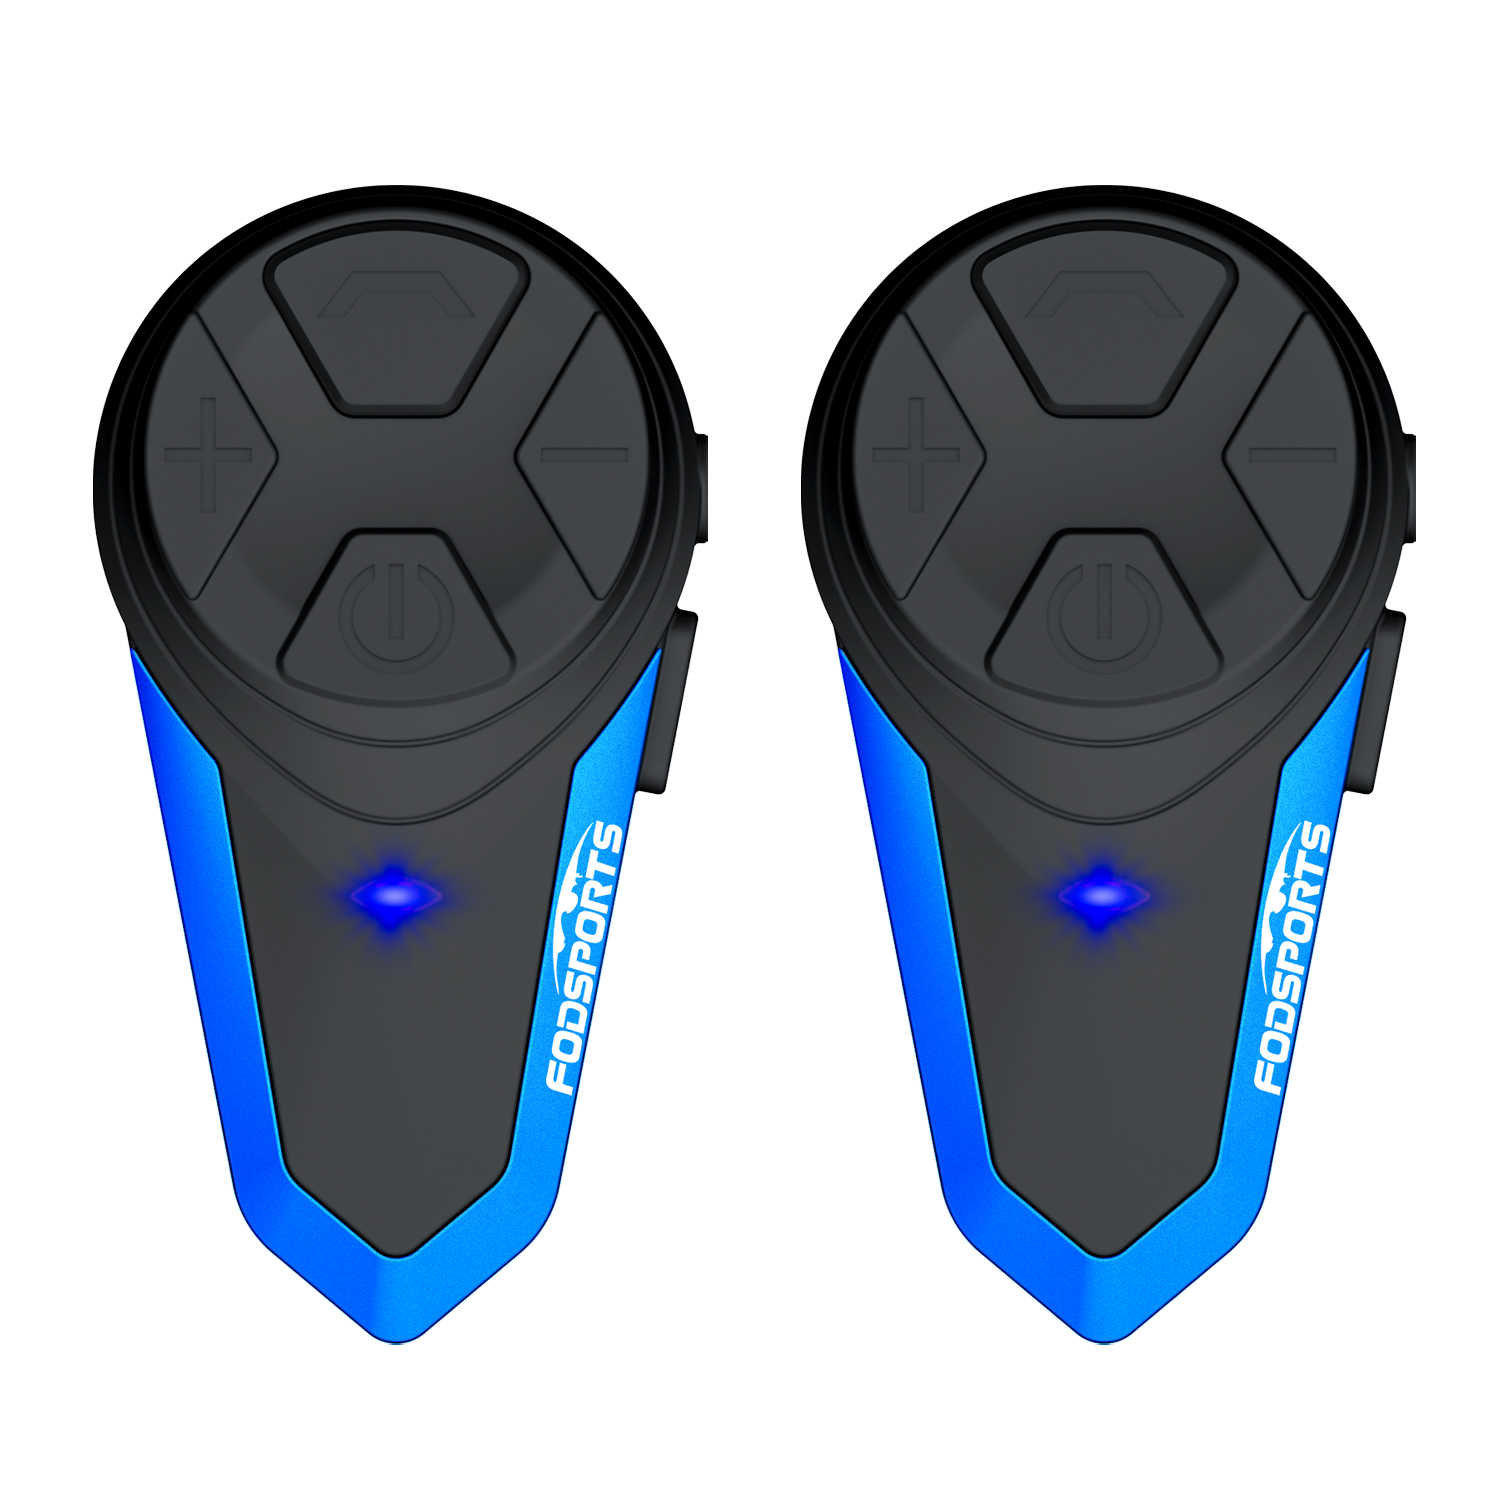 Fodsports 2 Pcs BT-S3 Motor Helm Intercom Moto Helm Bluetooth Headset Tahan Air Intercomunicador Bt Interphone FM